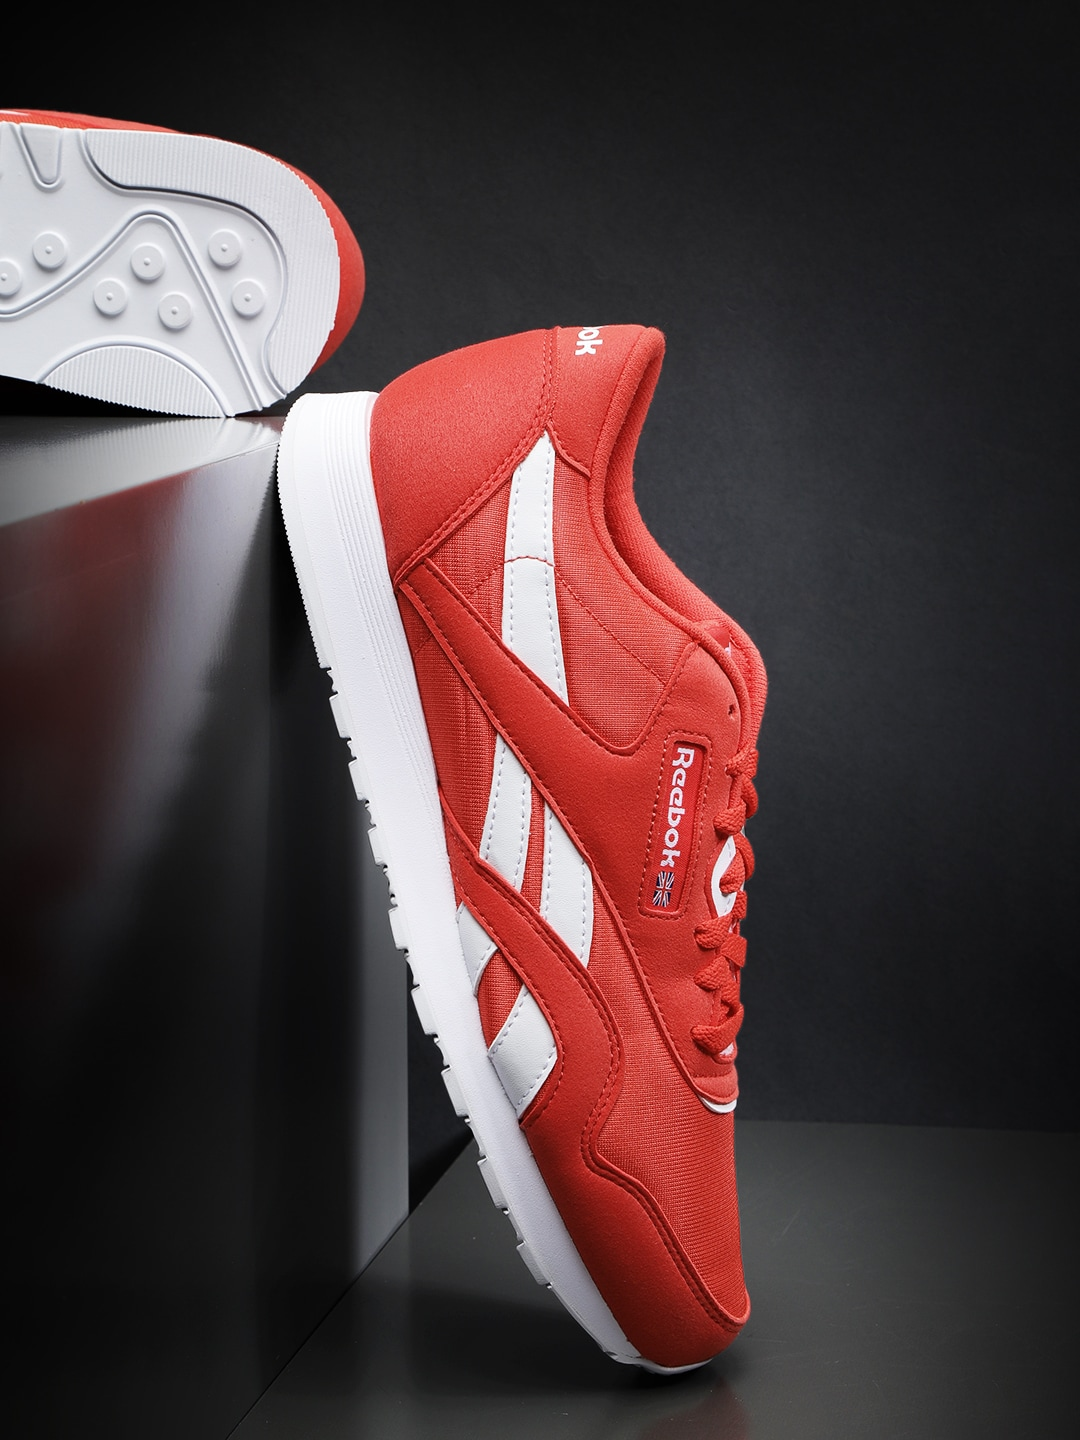 11feb34d58c Reebok Classic Shoes - Buy Reebok Classic Shoes online in India